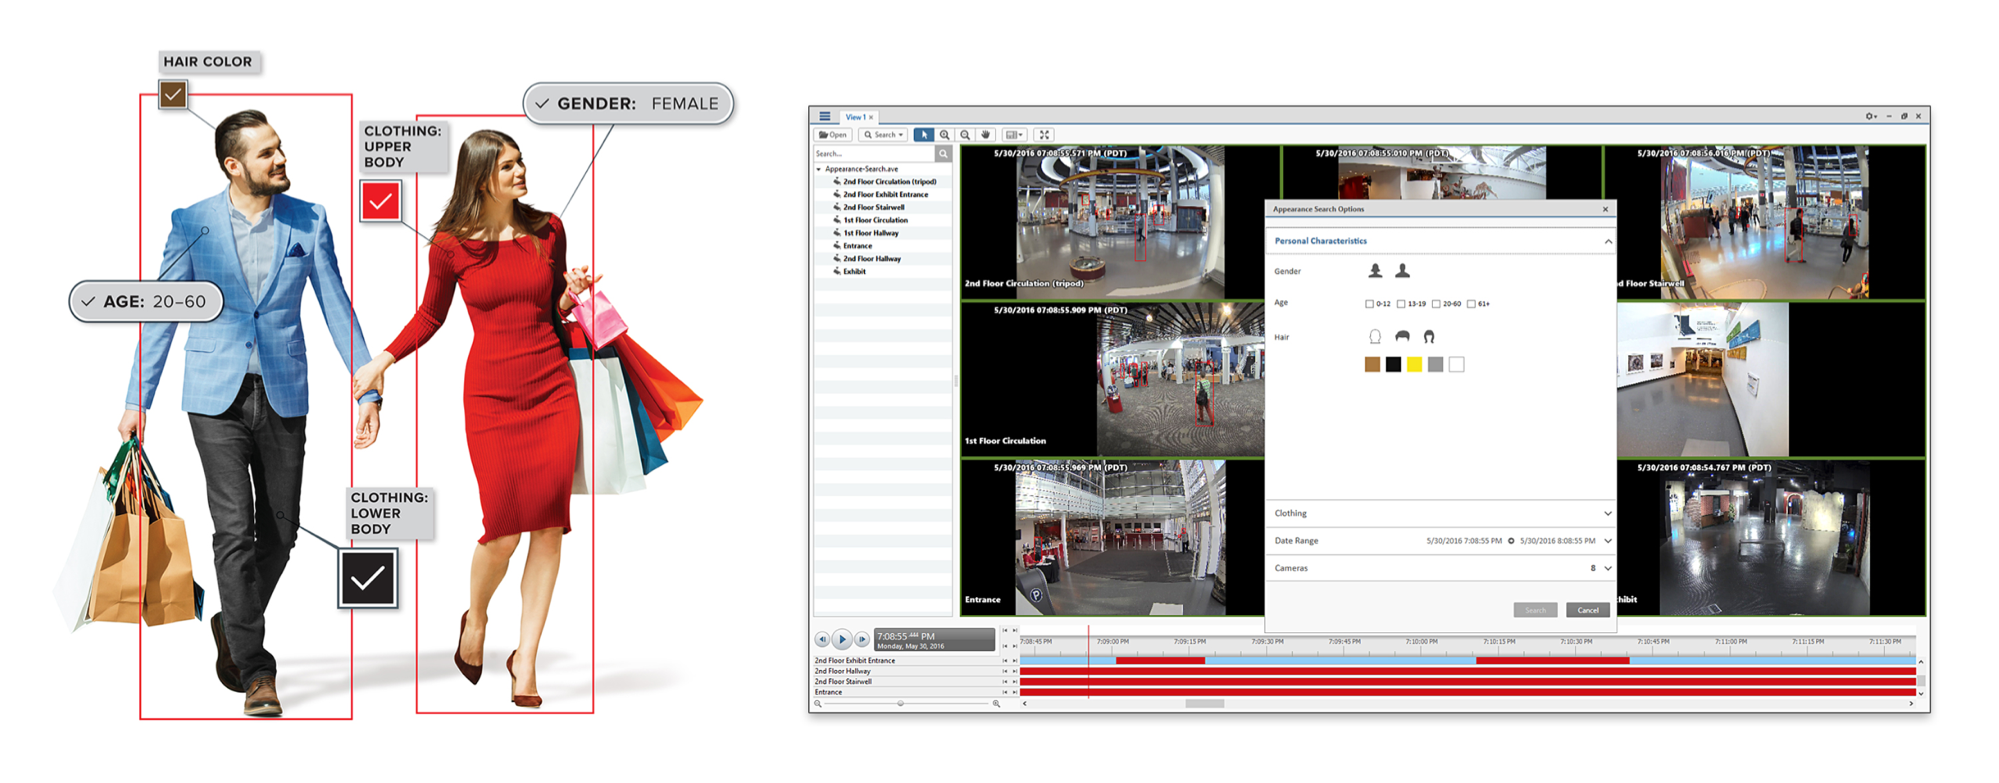 Why do I need CCTV Video Analytics Software?